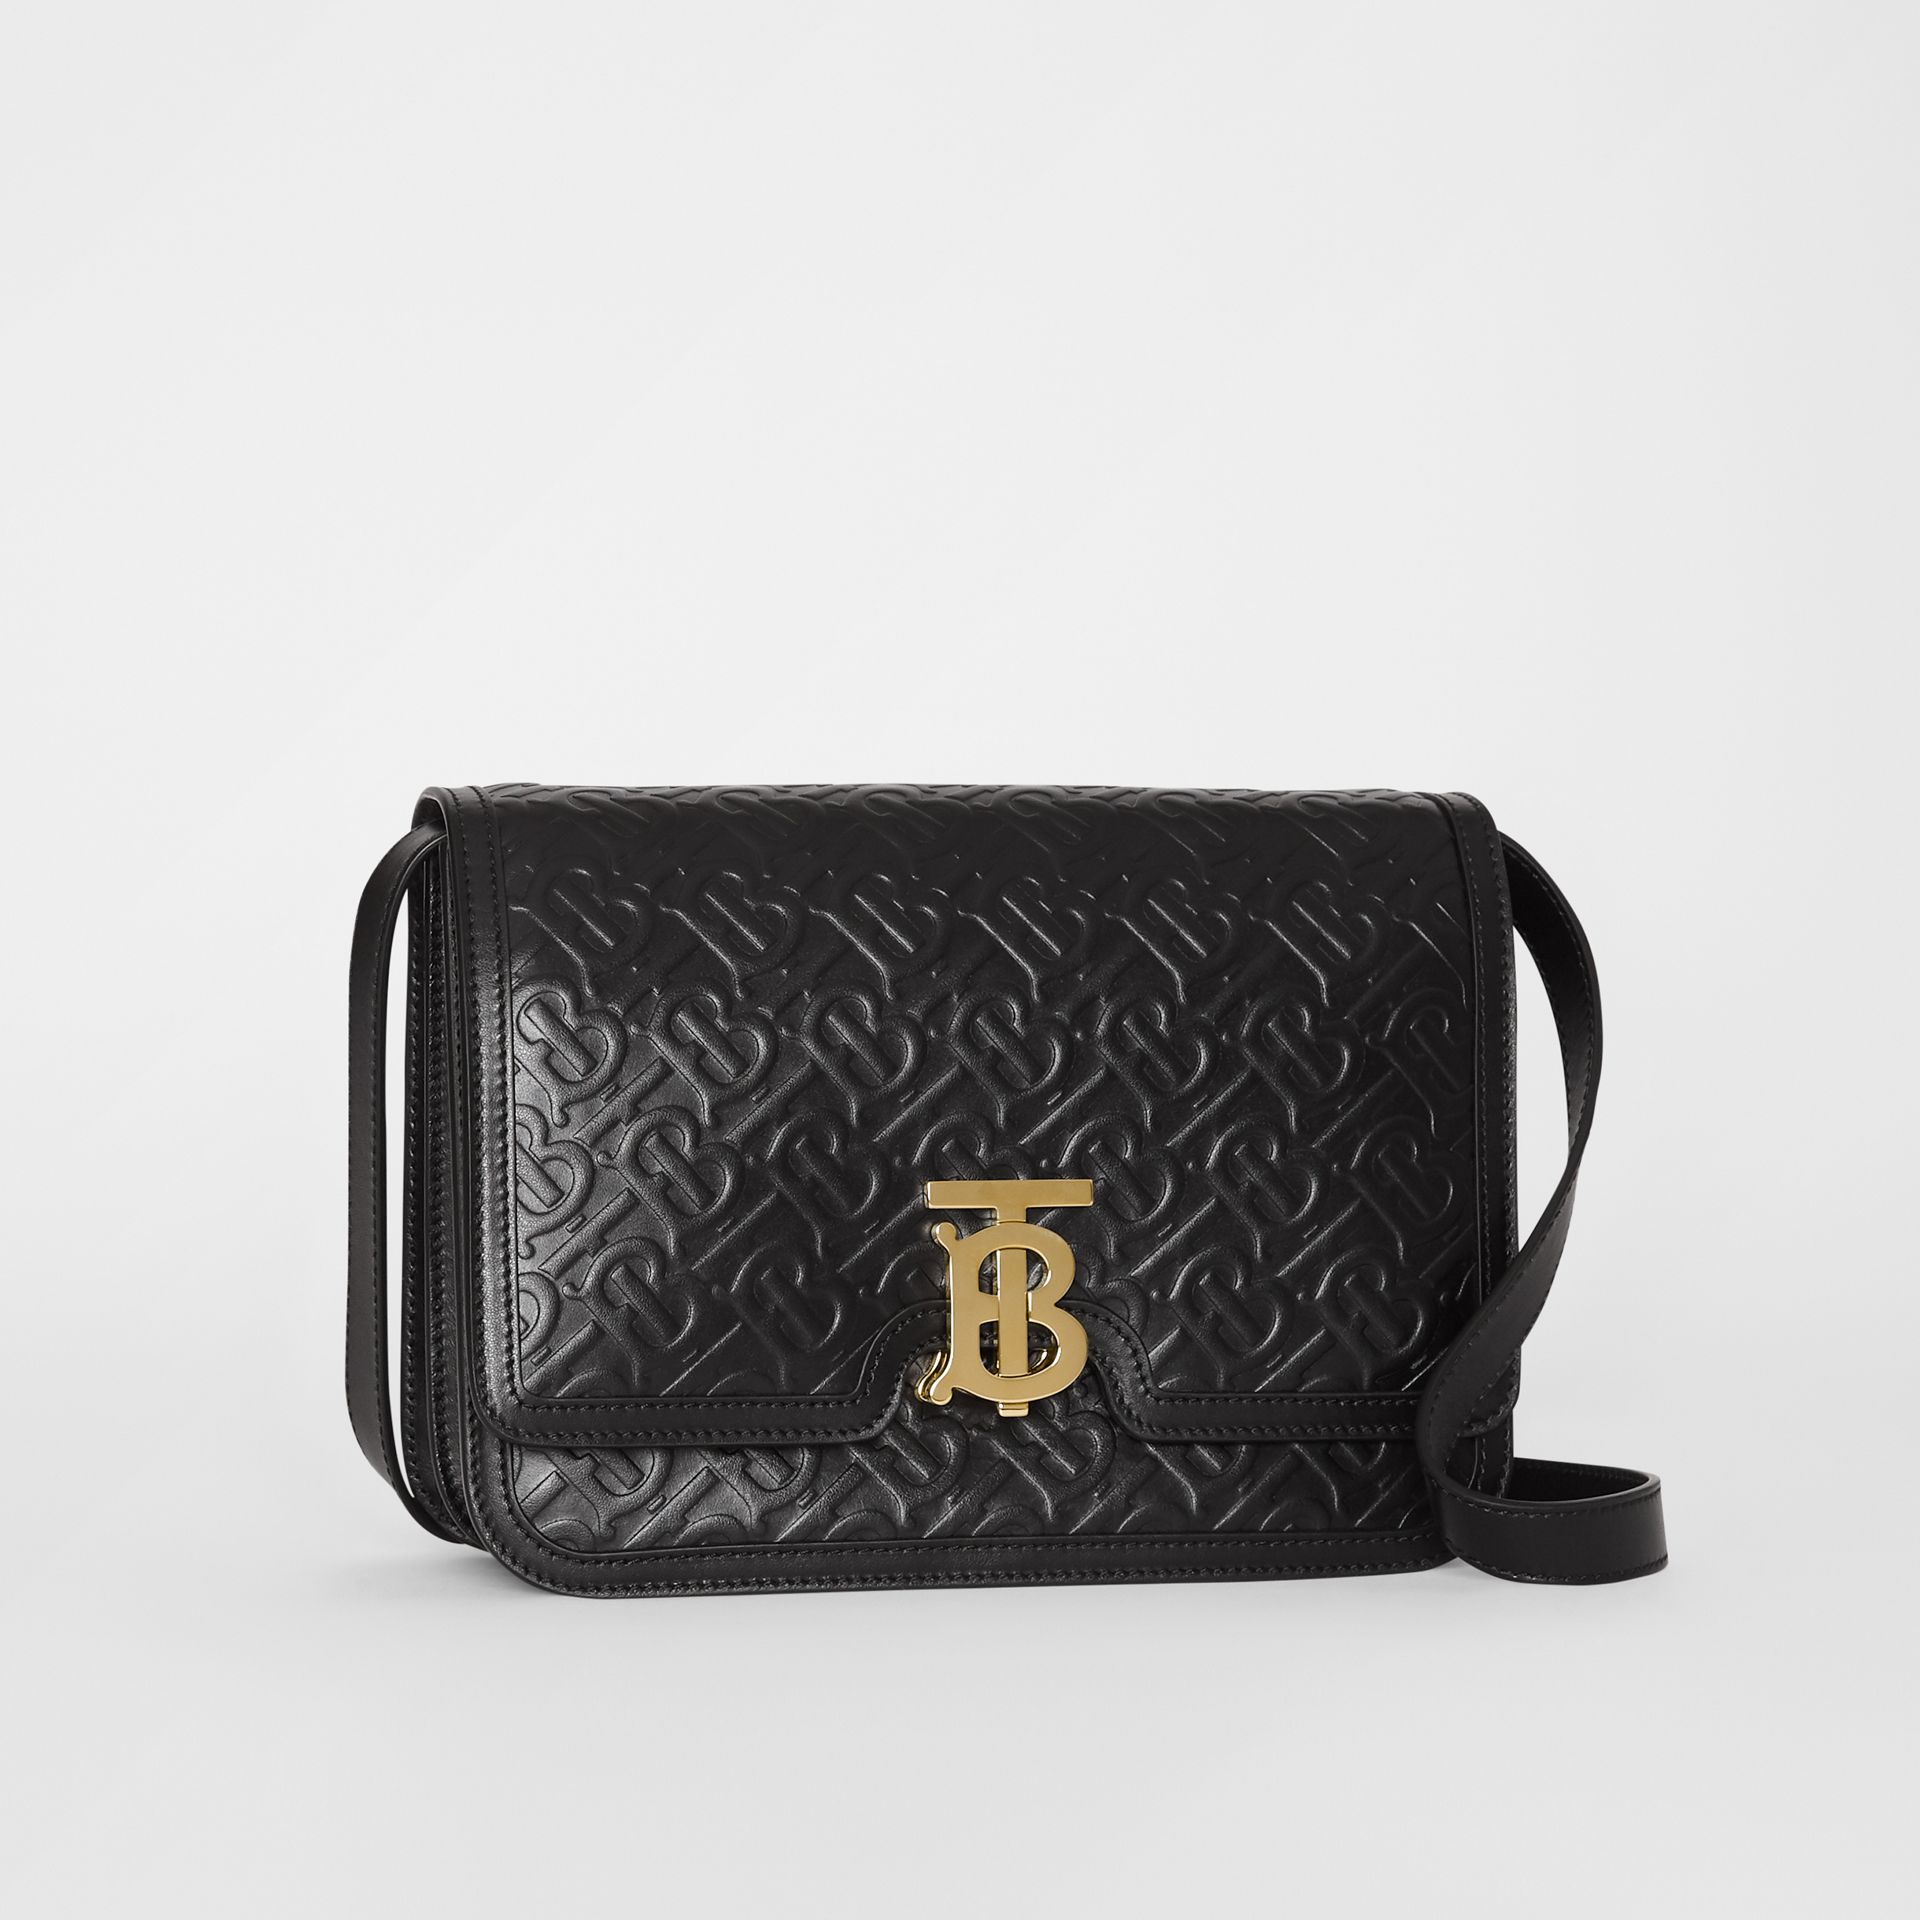 Medium Monogram Leather TB Bag in Black - Women | Burberry United Kingdom - gallery image 6